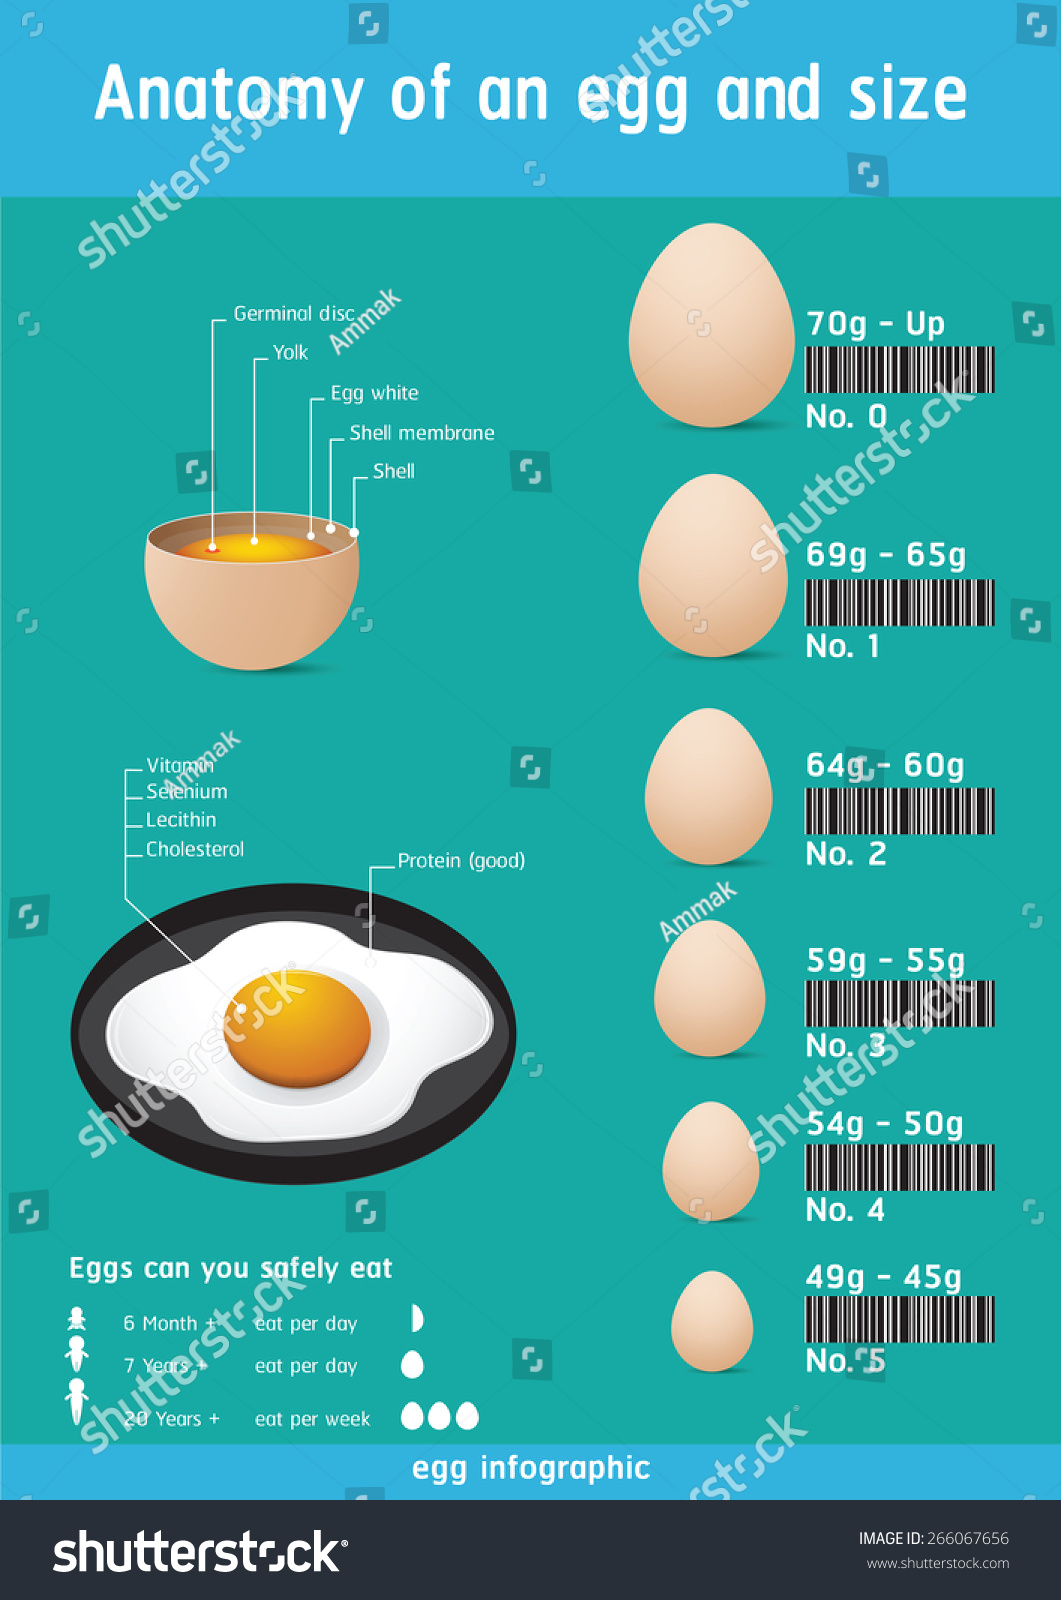 Food Infographic Anatomy Egg Size Stock Vector (Royalty Free ...